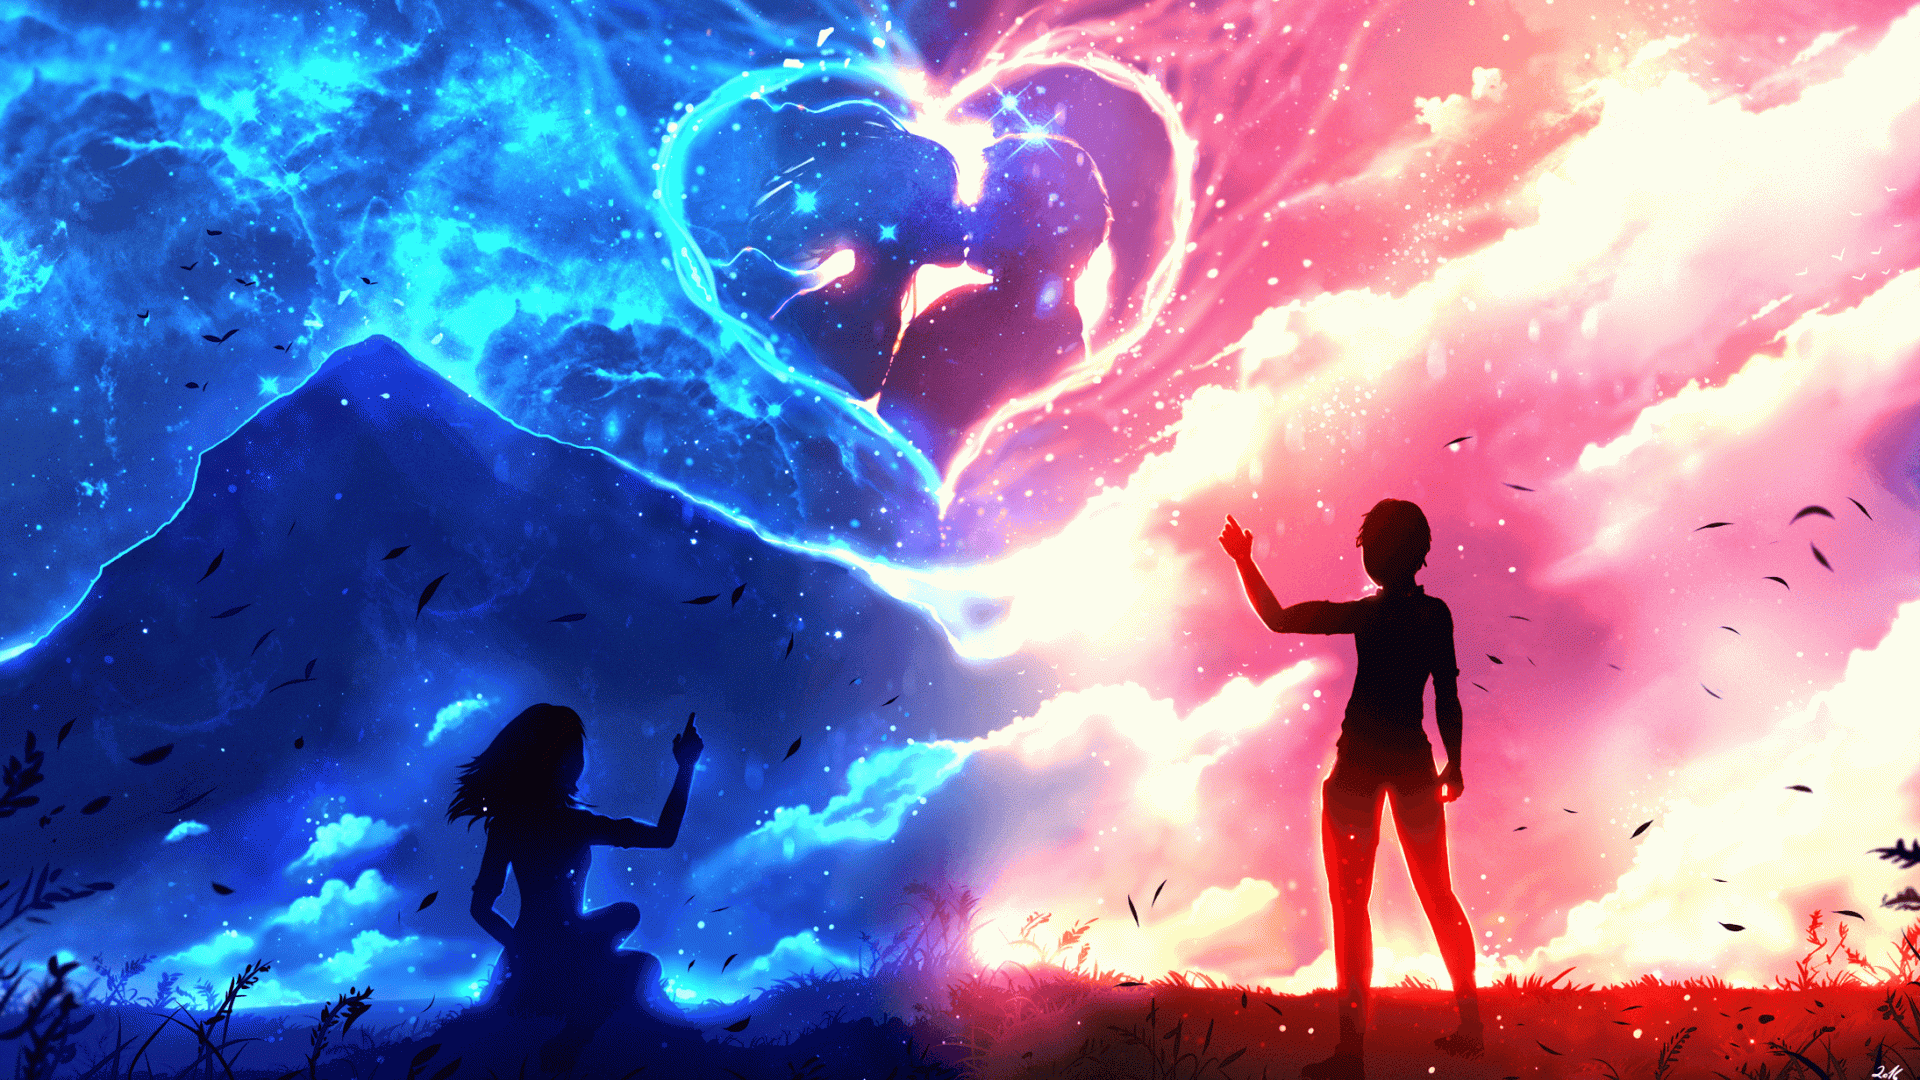 Free Download Anime Boy And Girl Wallpapers Top Anime Boy And Girl 2189x1315 For Your Desktop Mobile Tablet Explore 27 Anime Boy And Girl Wallpapers Anime Boy And Girl